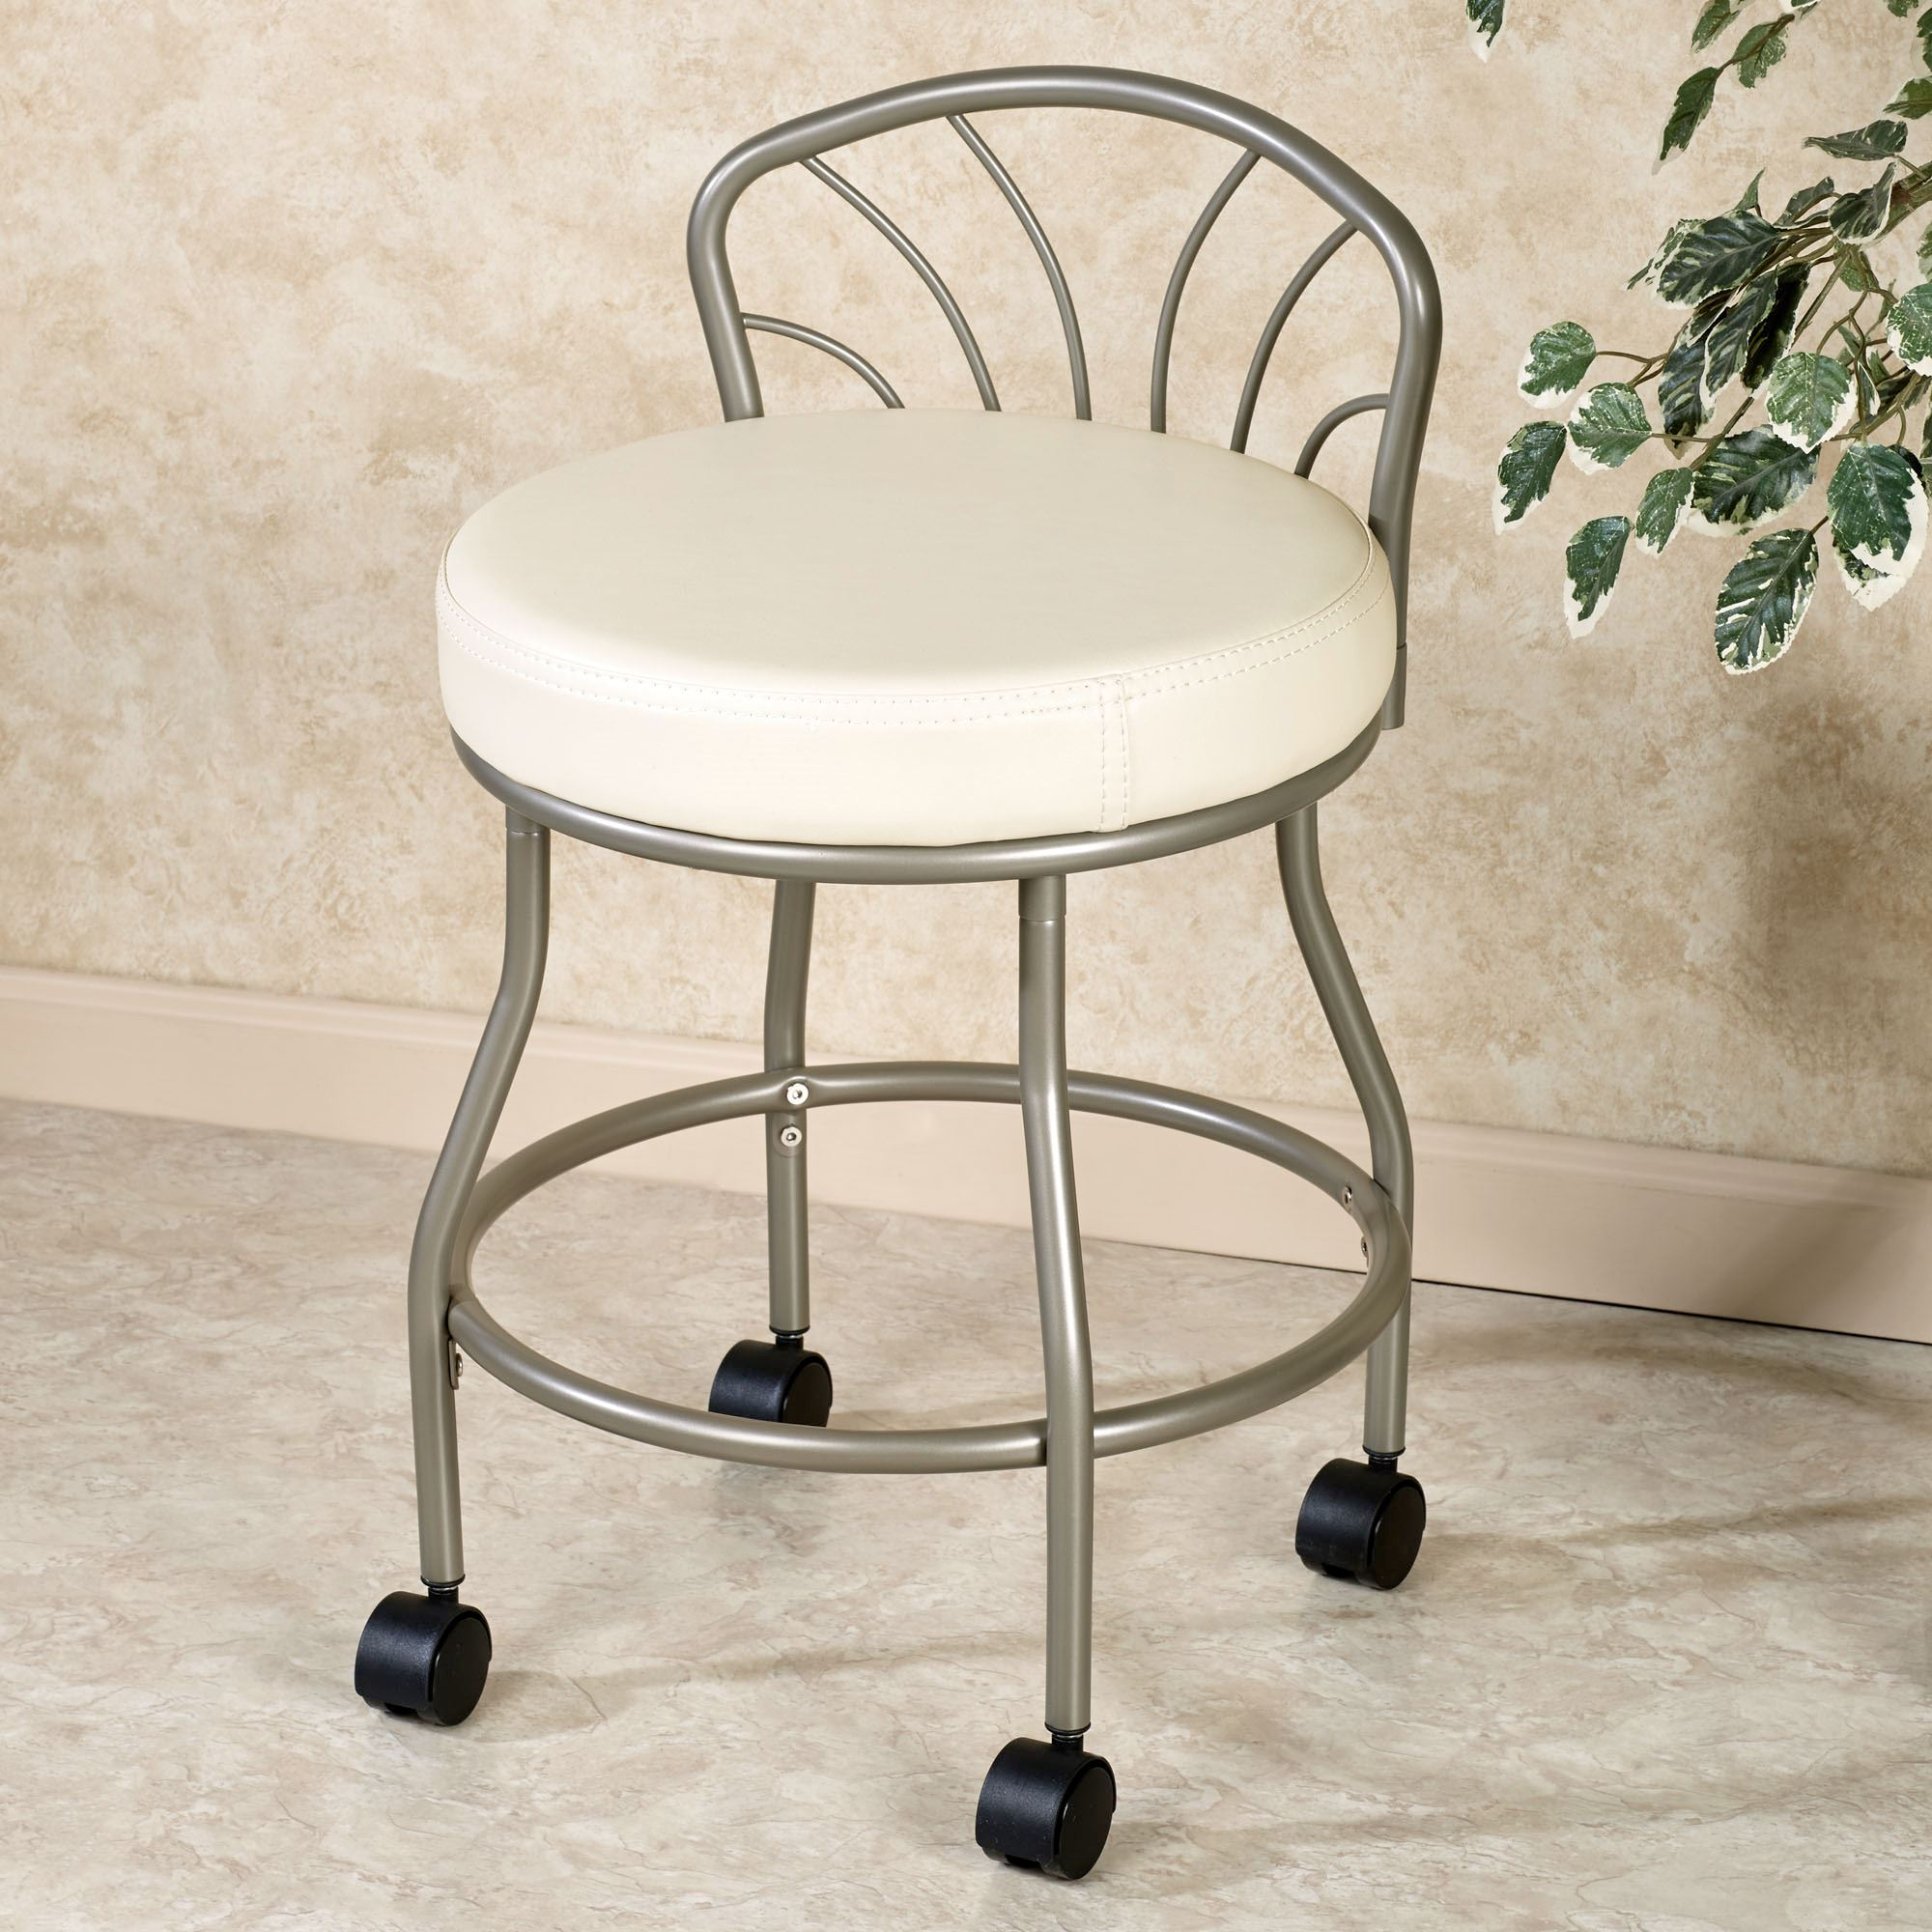 flare back powder finish vanity chair. click to expand DLTFNTJ